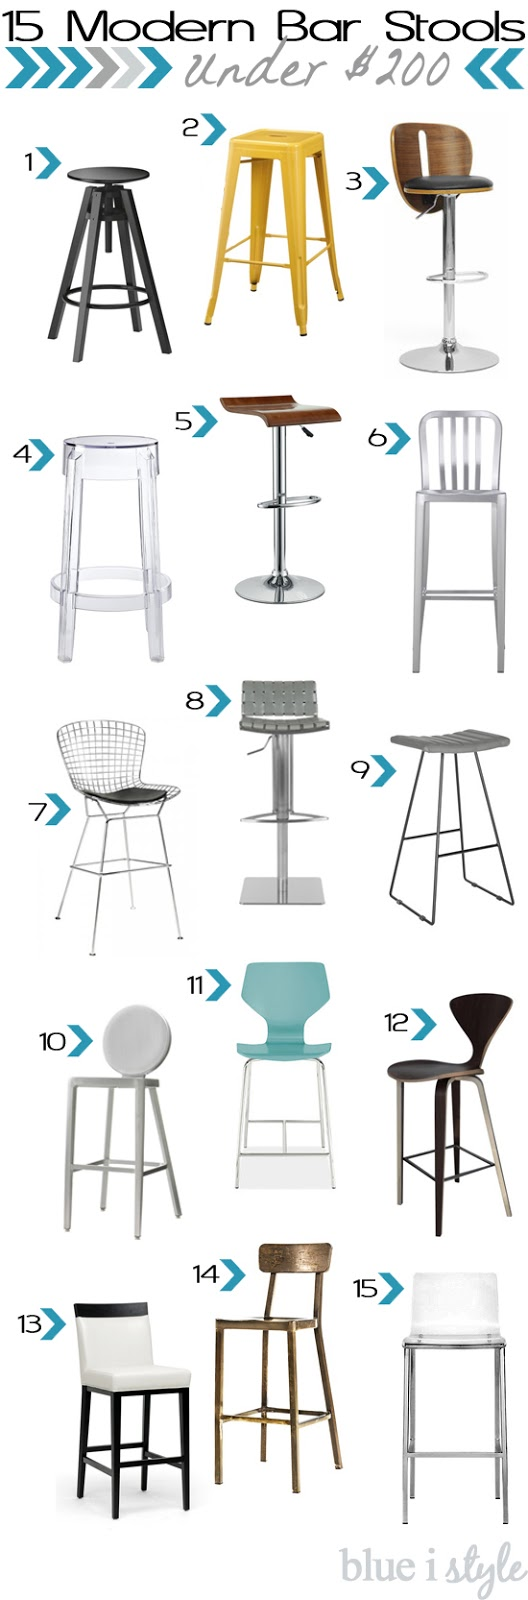 Shopping For Style 15 Modern Bar Stools Under 200 Amp The